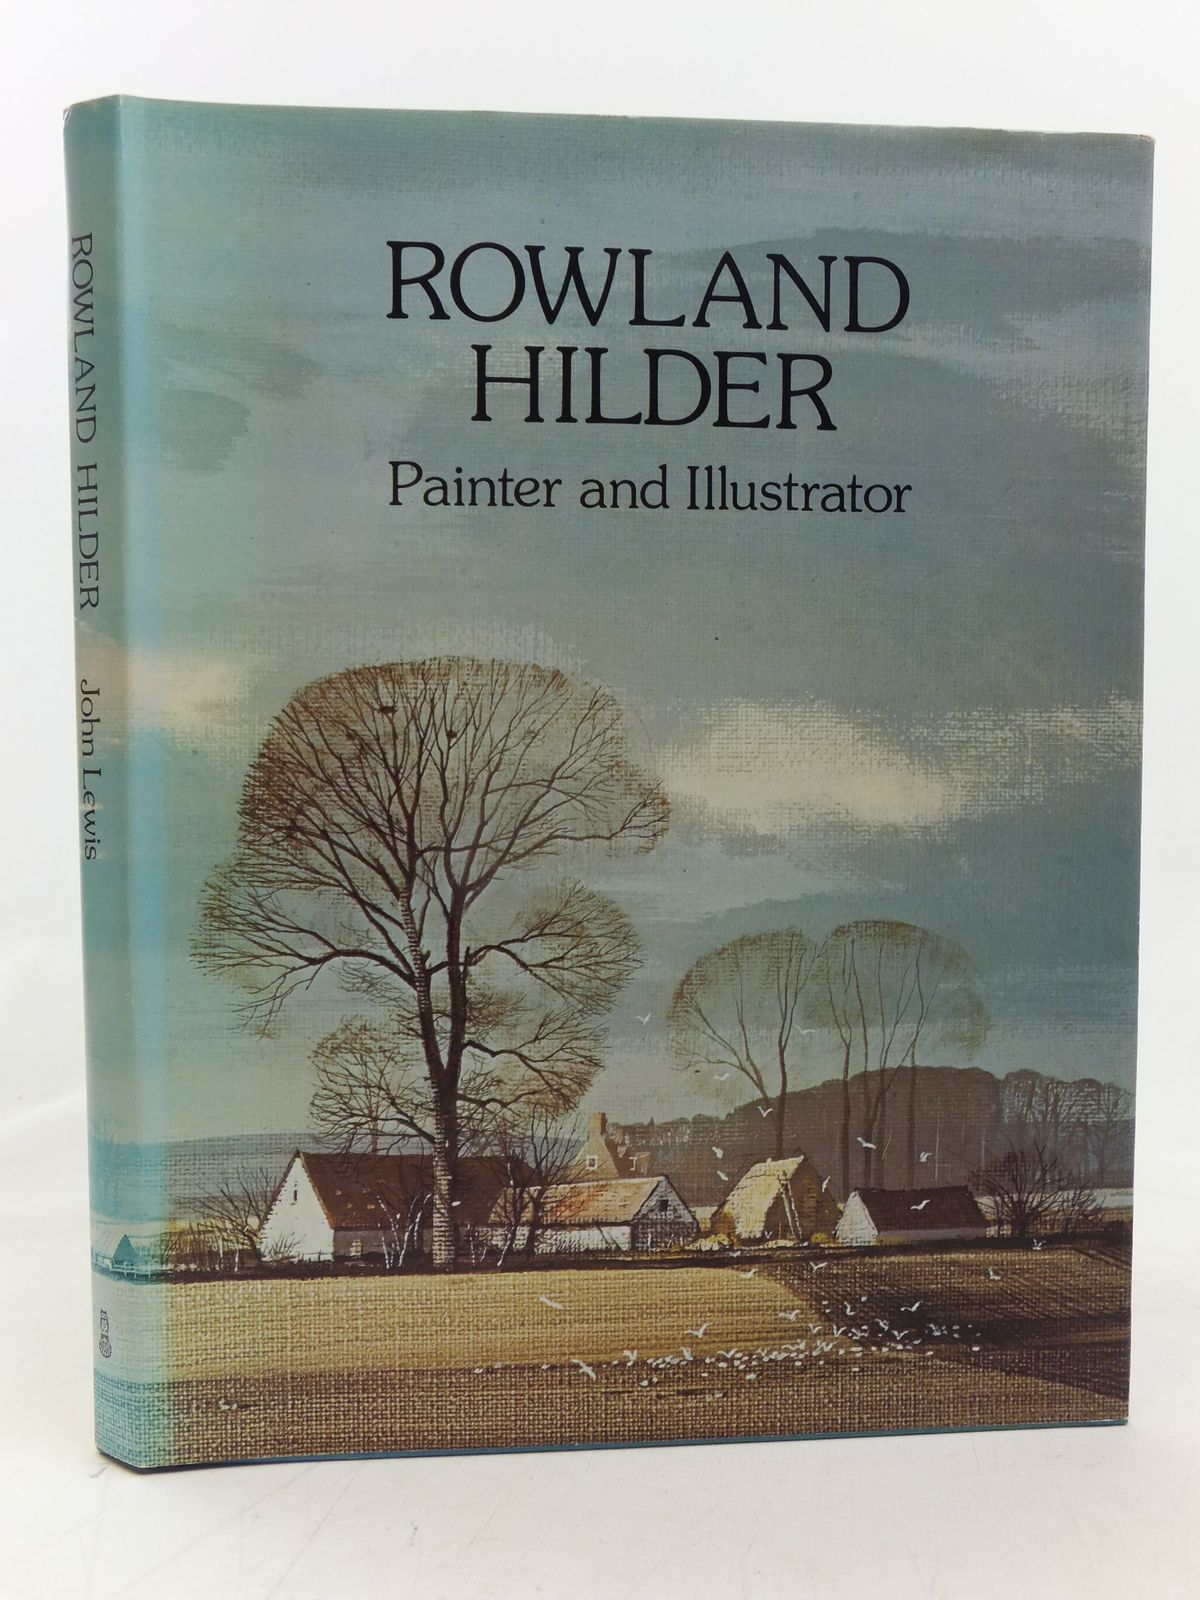 Photo of ROWLAND HILDER PAINTER AND ILLUSTRATOR written by Lewis, John published by Barrie & Jenkins (STOCK CODE: 1606536)  for sale by Stella & Rose's Books